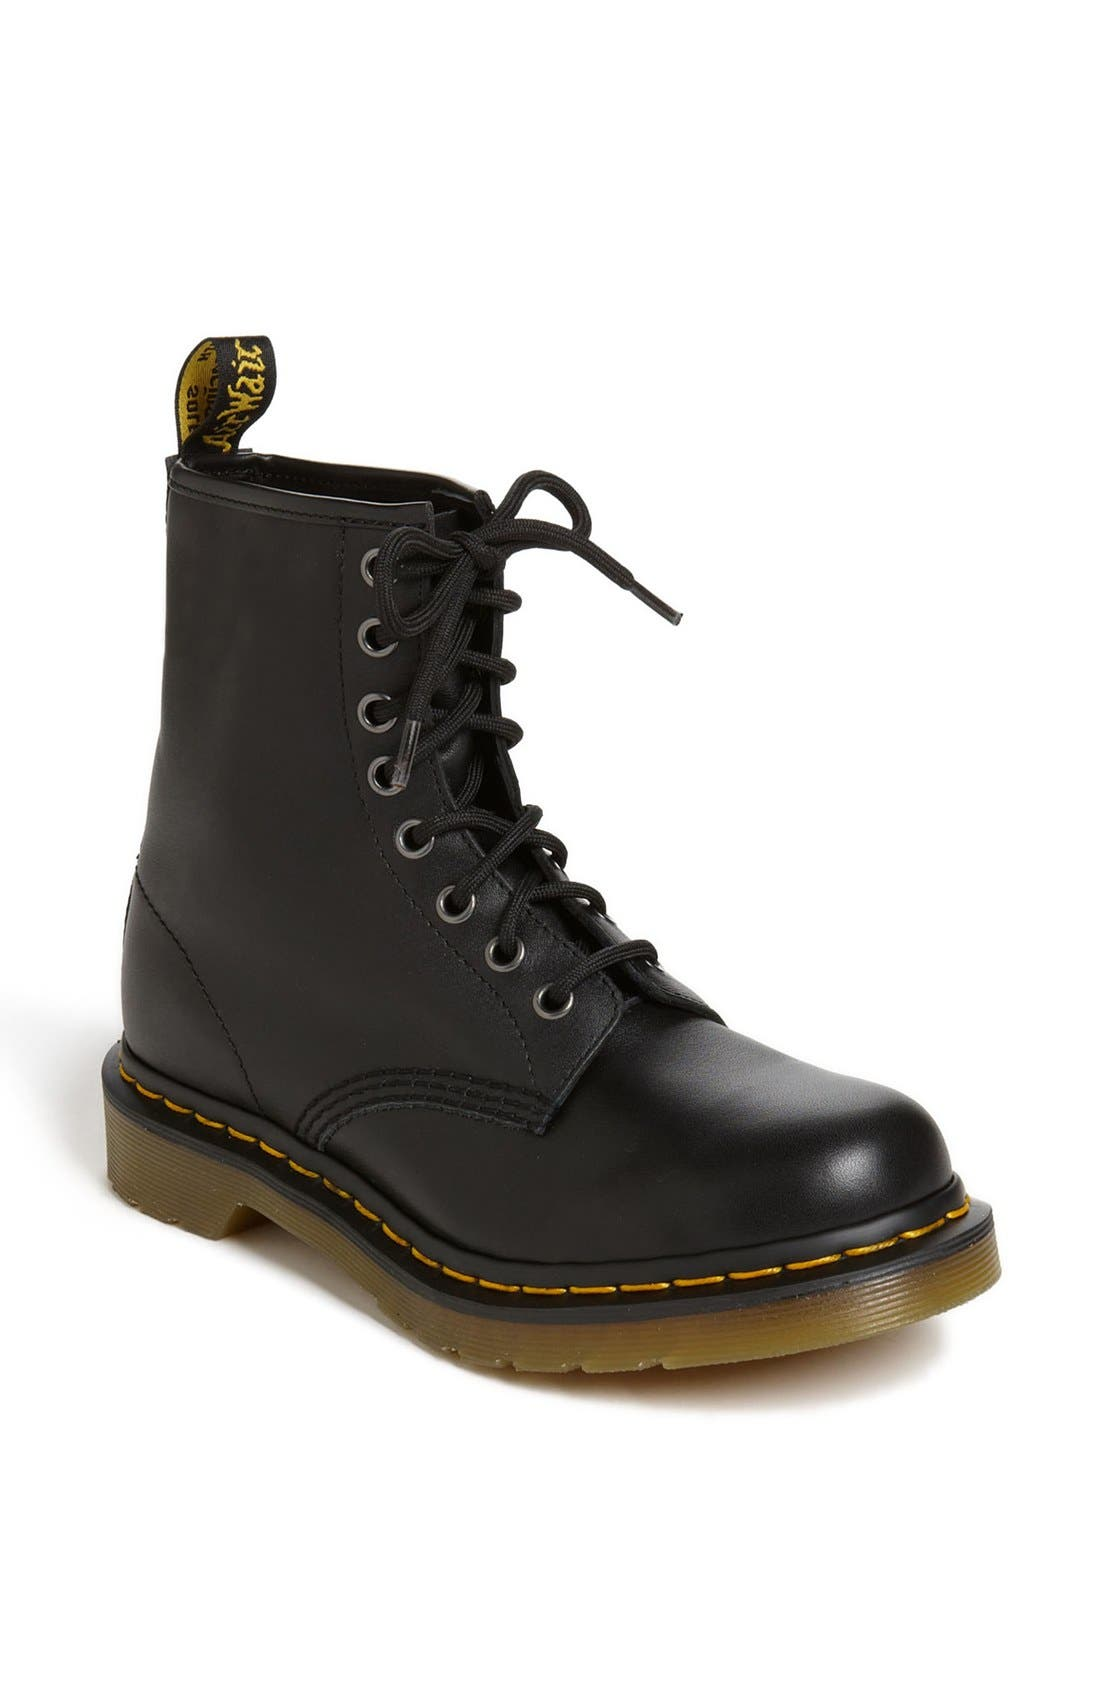 Main Image - Dr. Martens 1460 W Boot (Women)